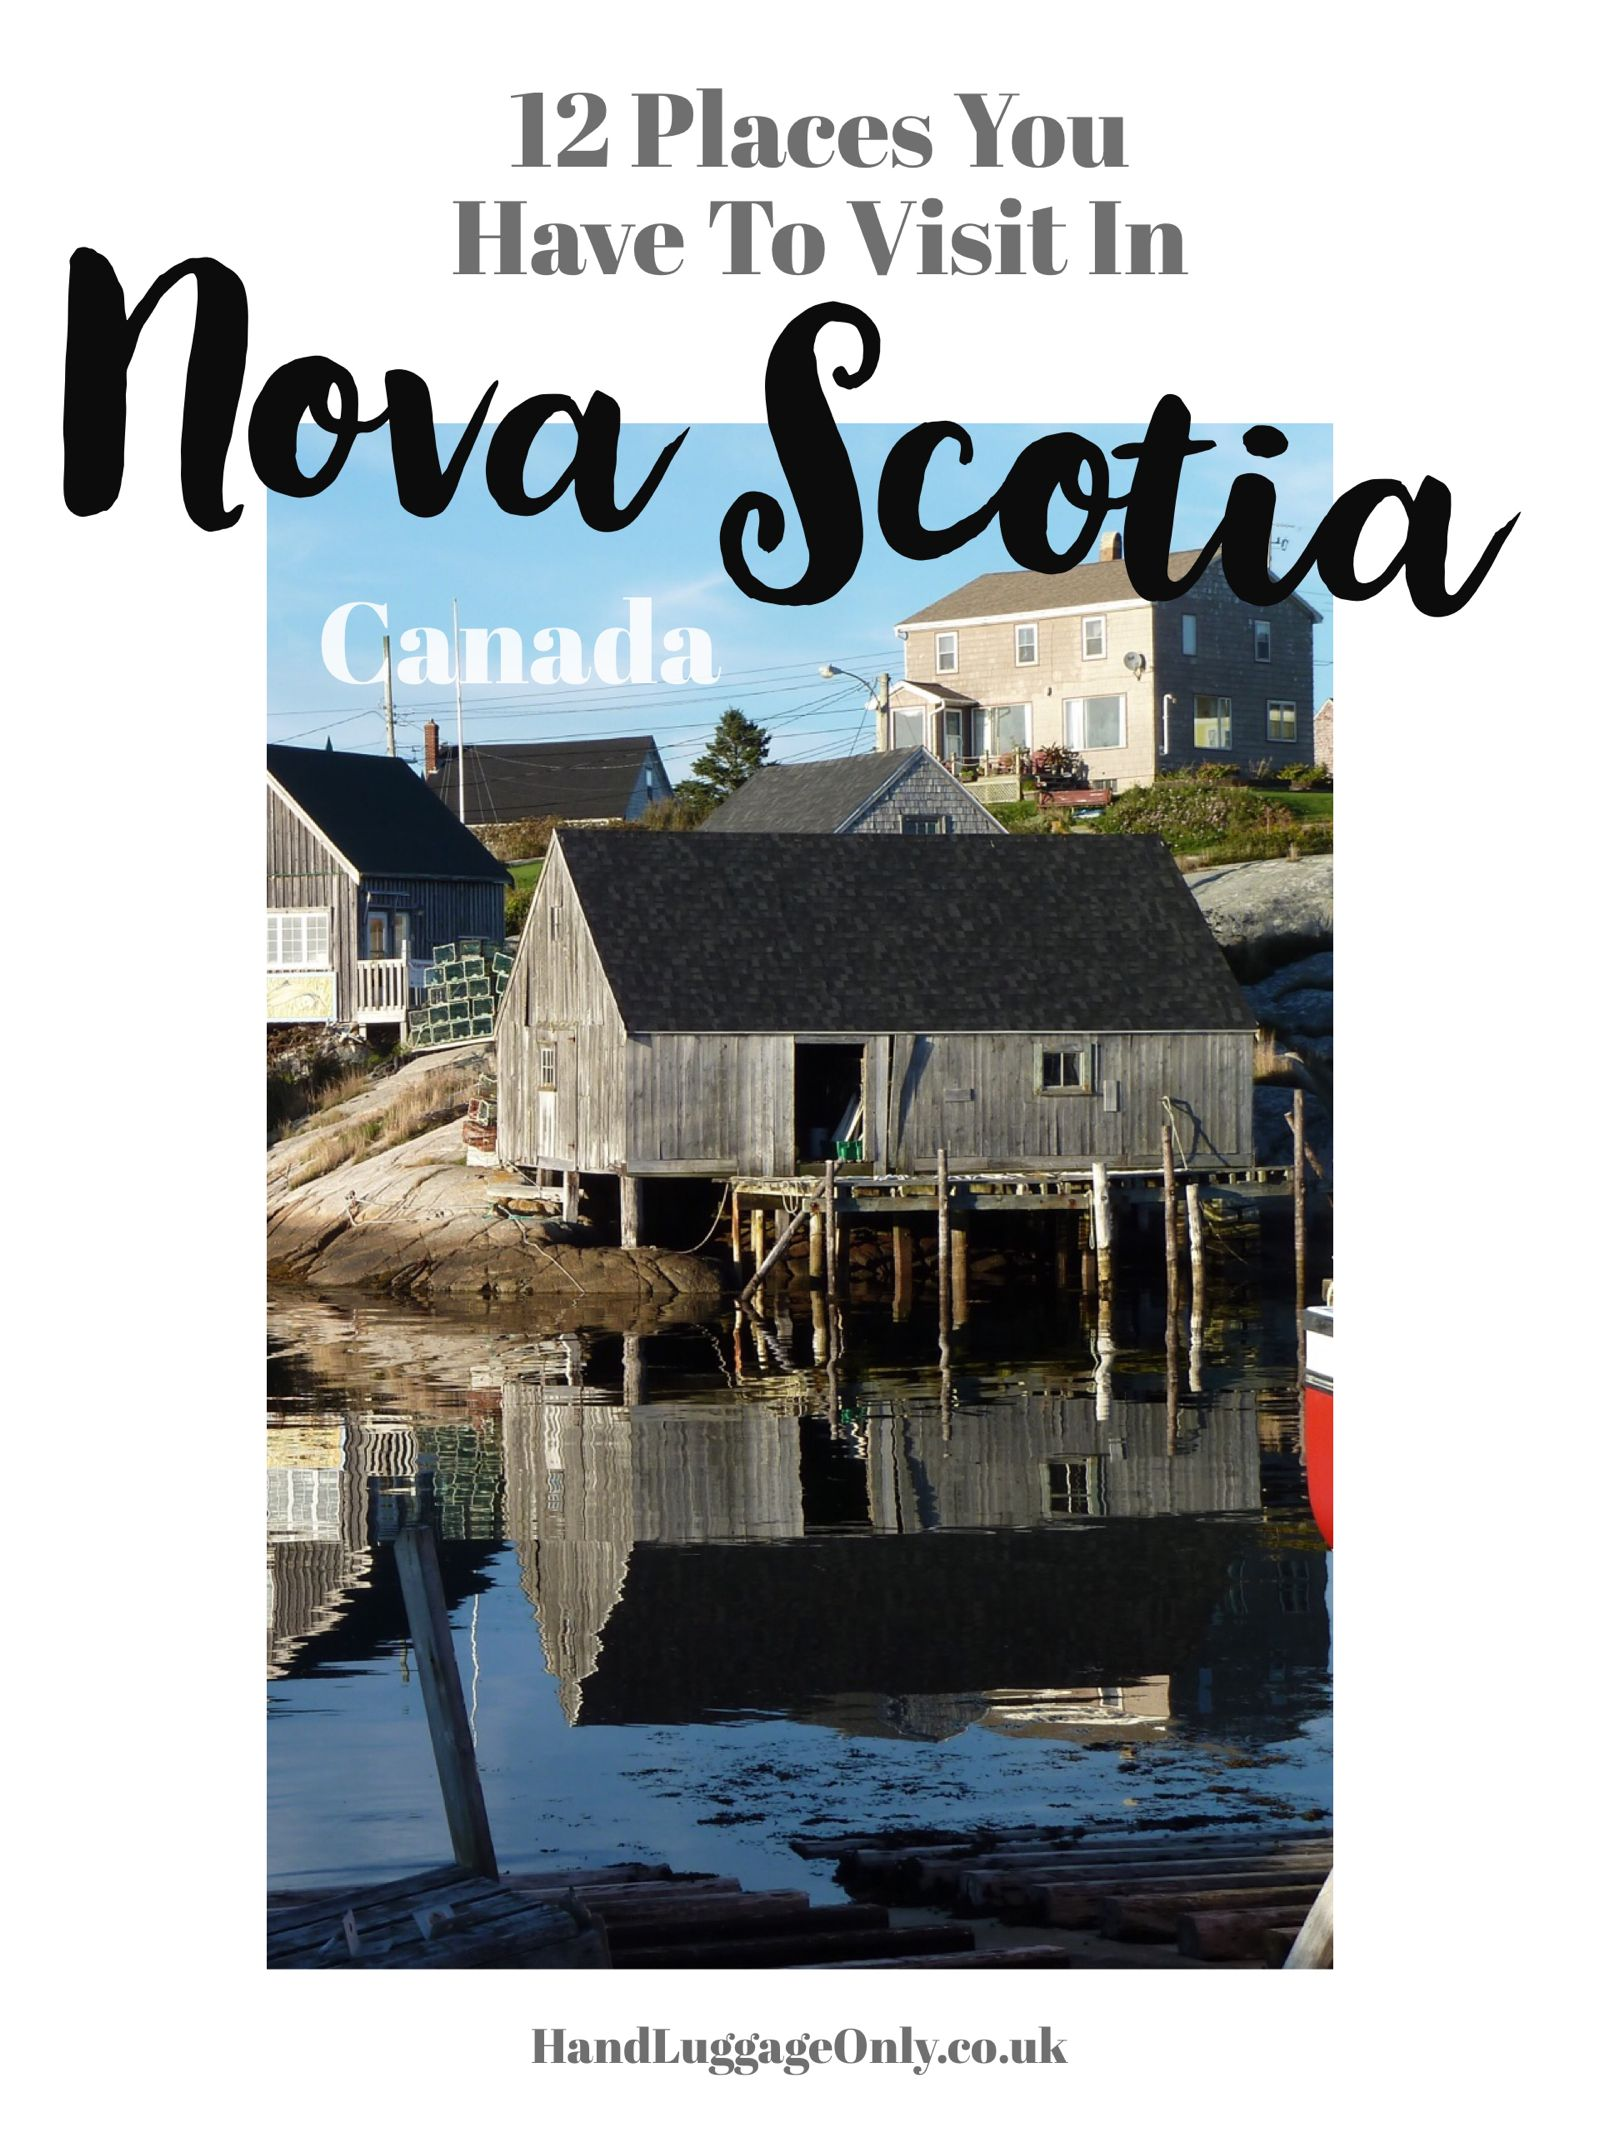 12 Amazing Things To See And Do In Nova Scotia, Canada (19)